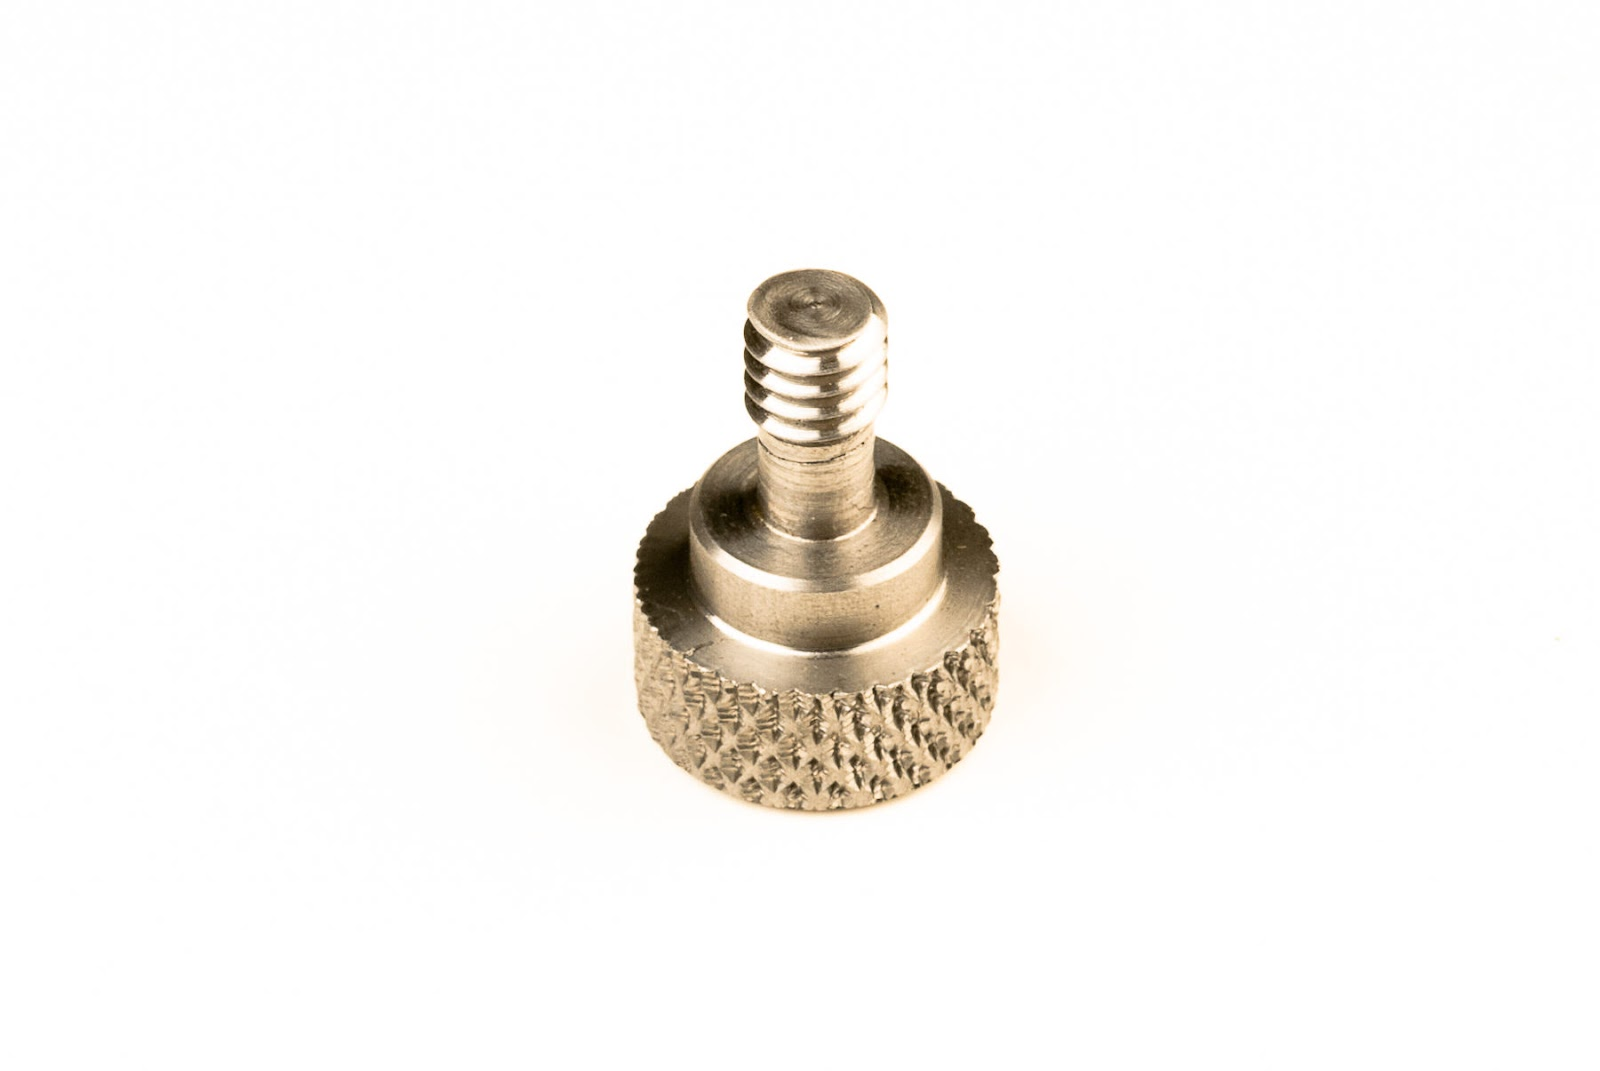 Hejnar Knurled Thumb Screw structure